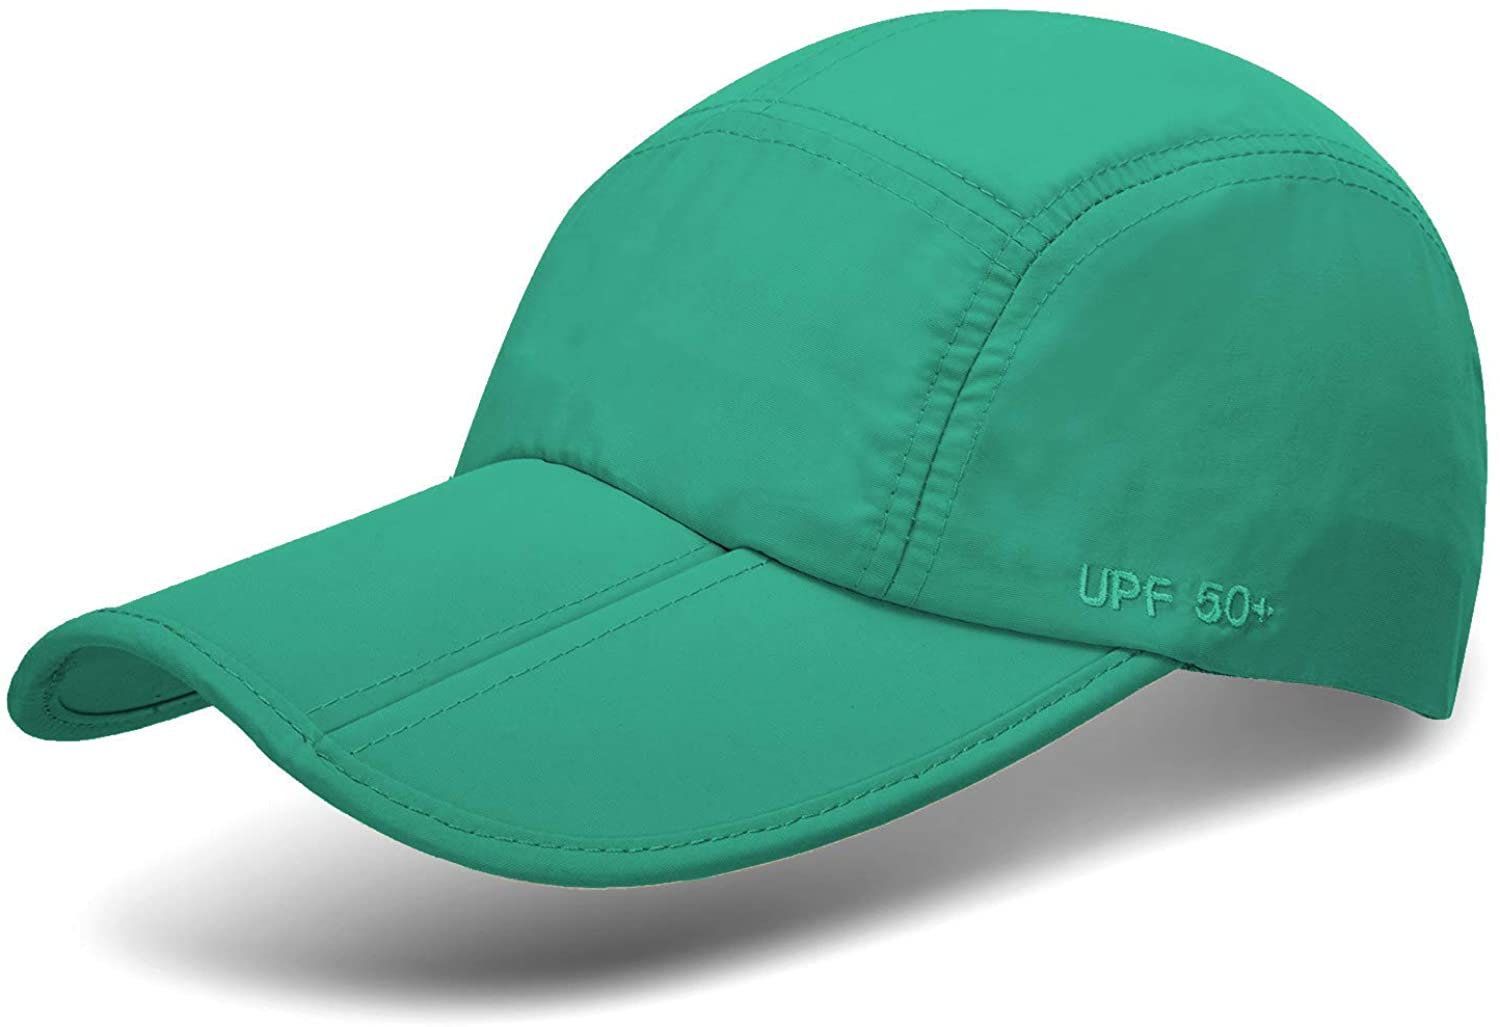 Unisex Foldable UPF 50+ Sun Protection Quick Dry Baseball Cap Portable Hats